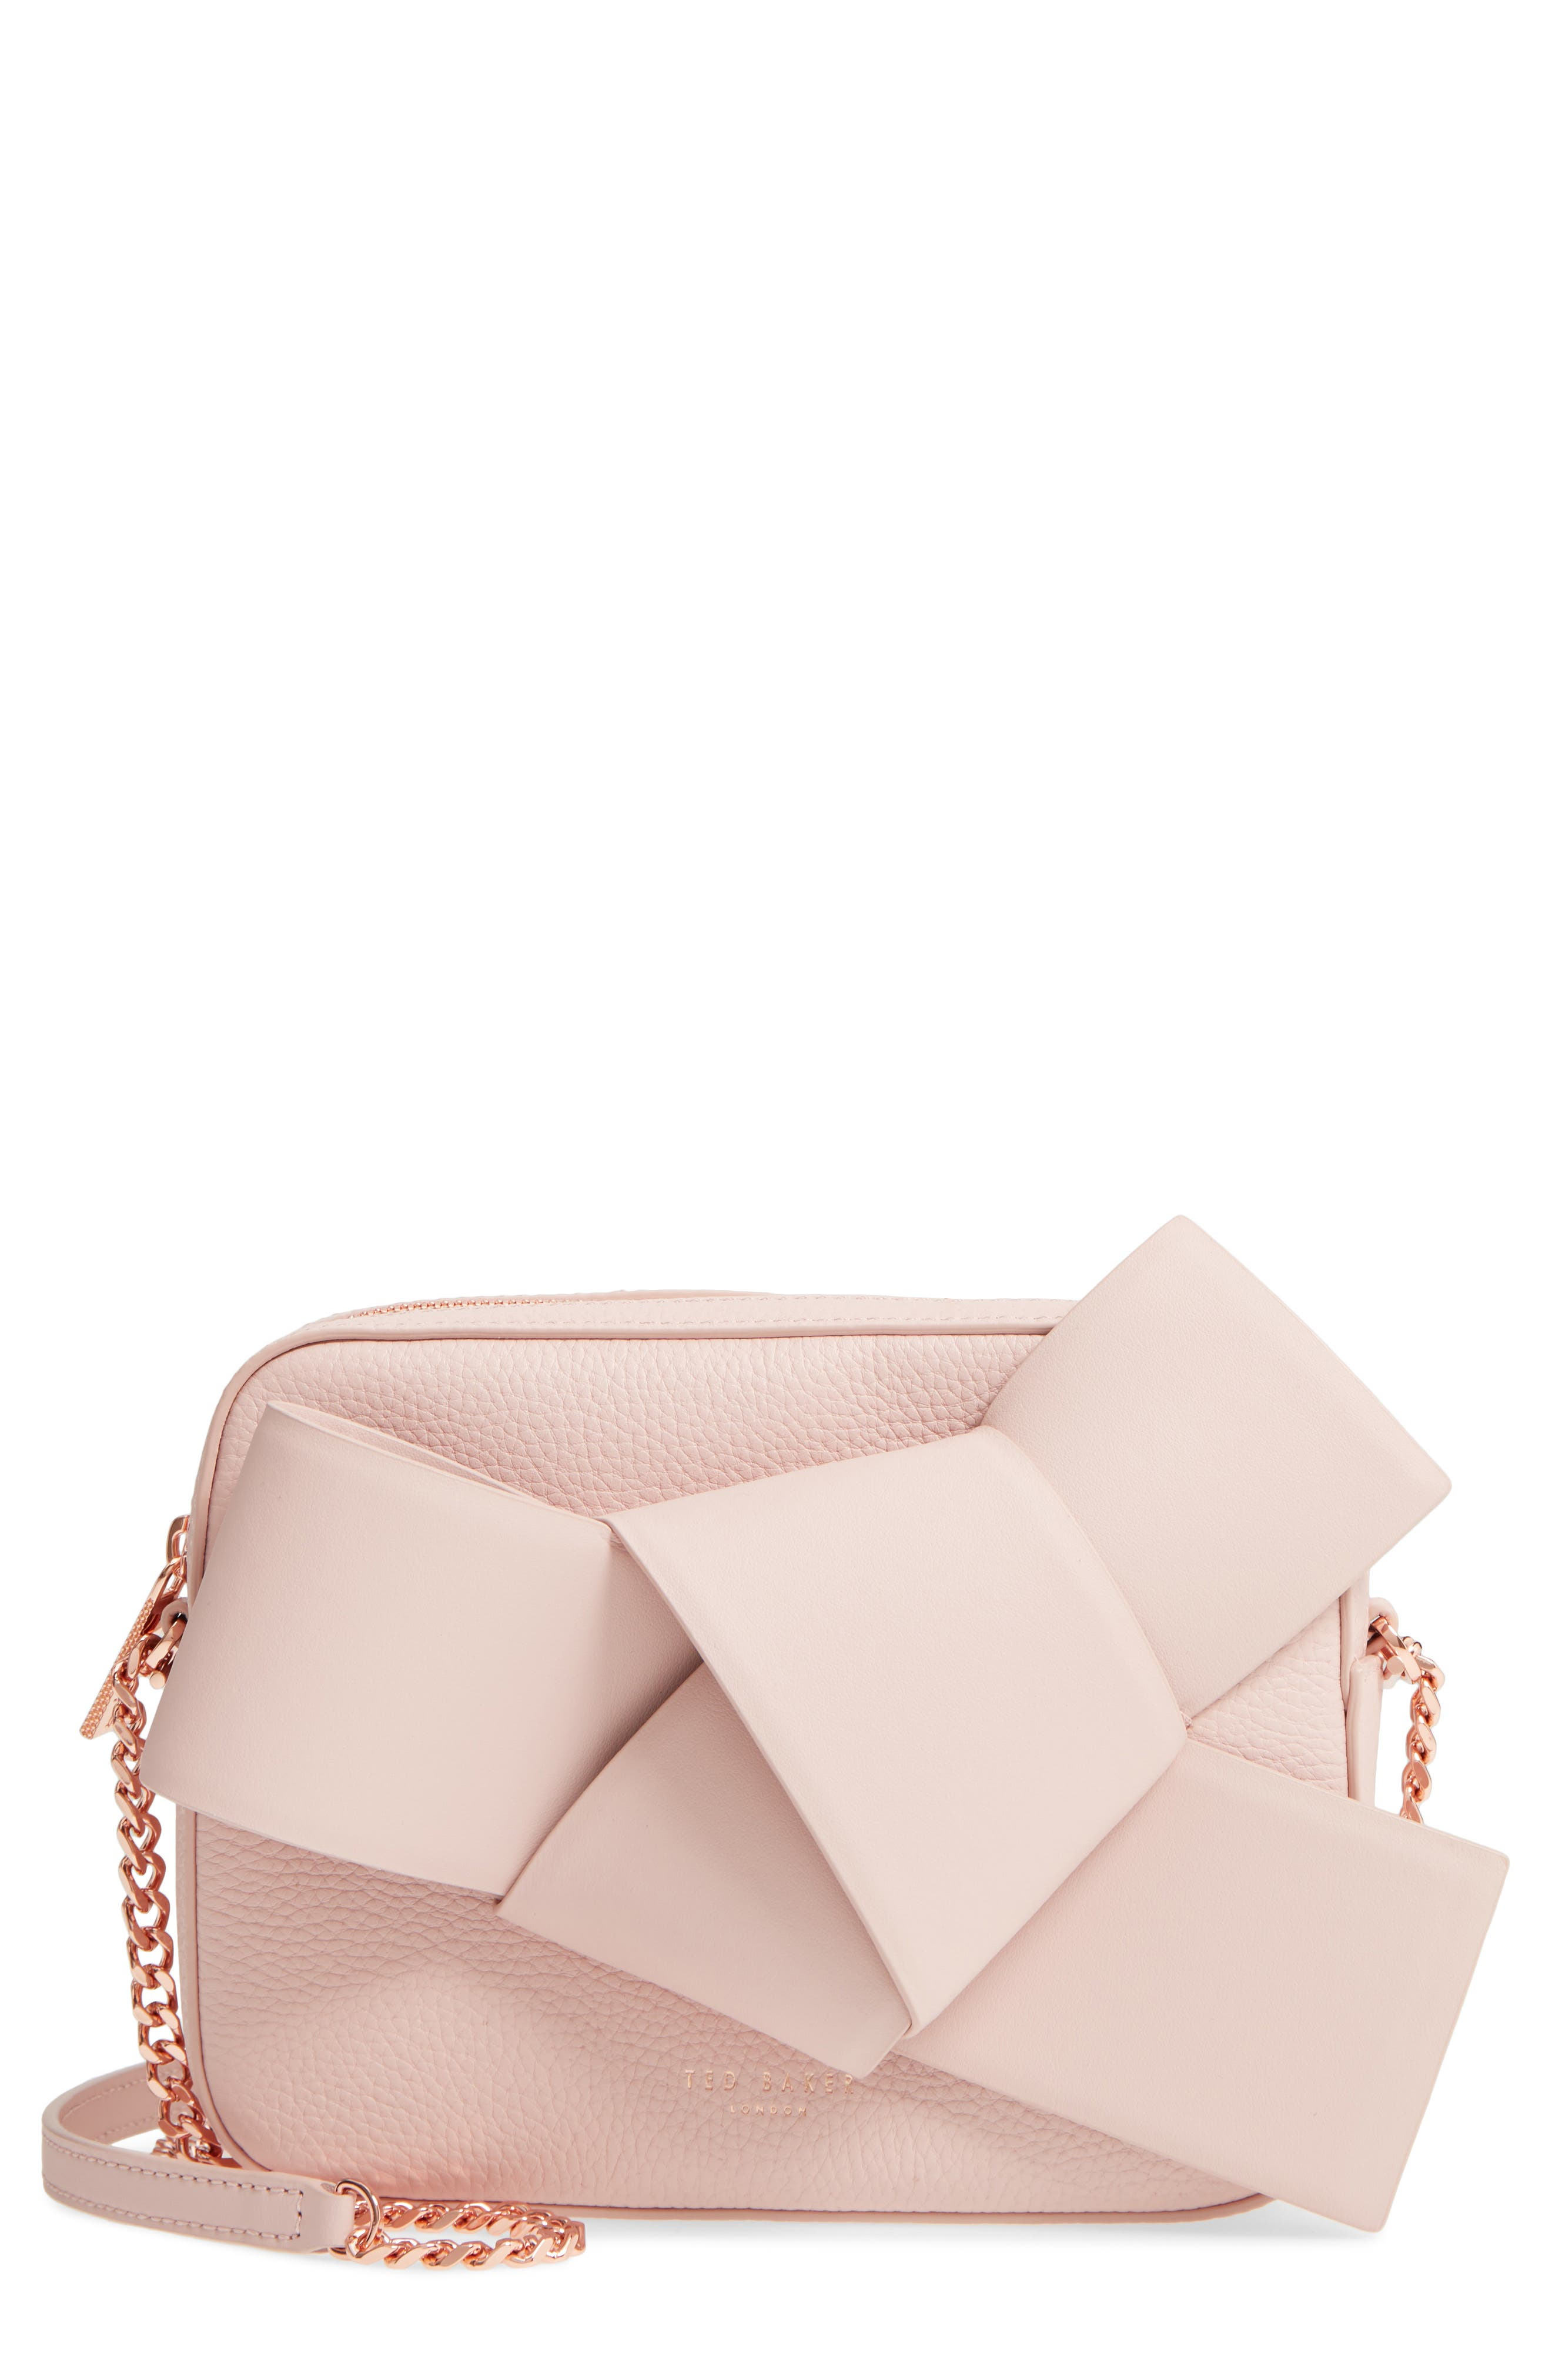 Giant Knot Leather Camera Bag,                         Main,                         color, NUDE PINK